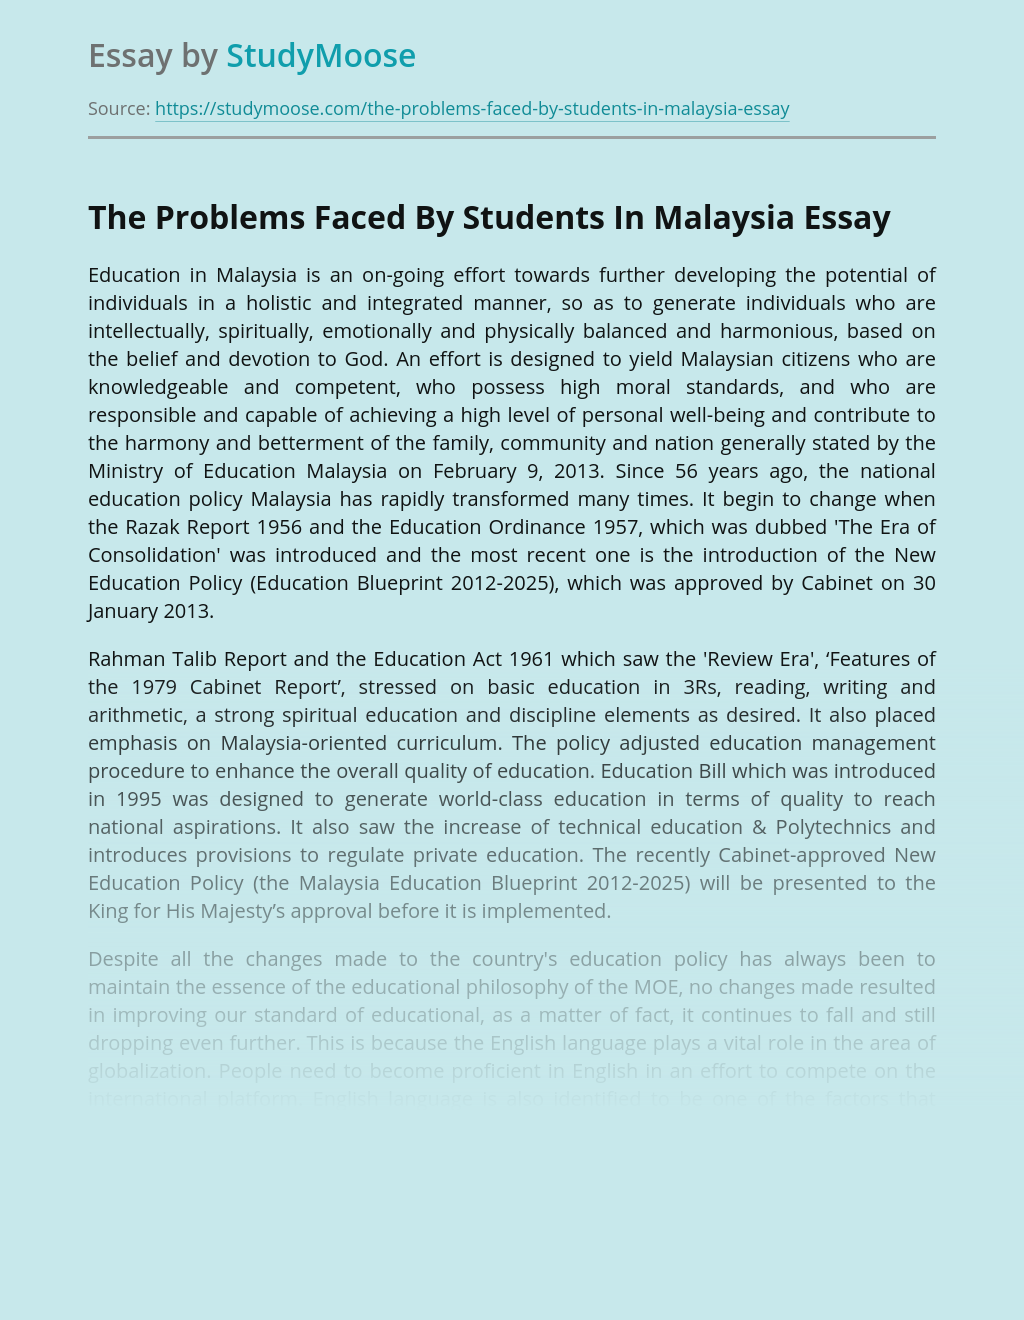 The Problems Faced By Students In Malaysia